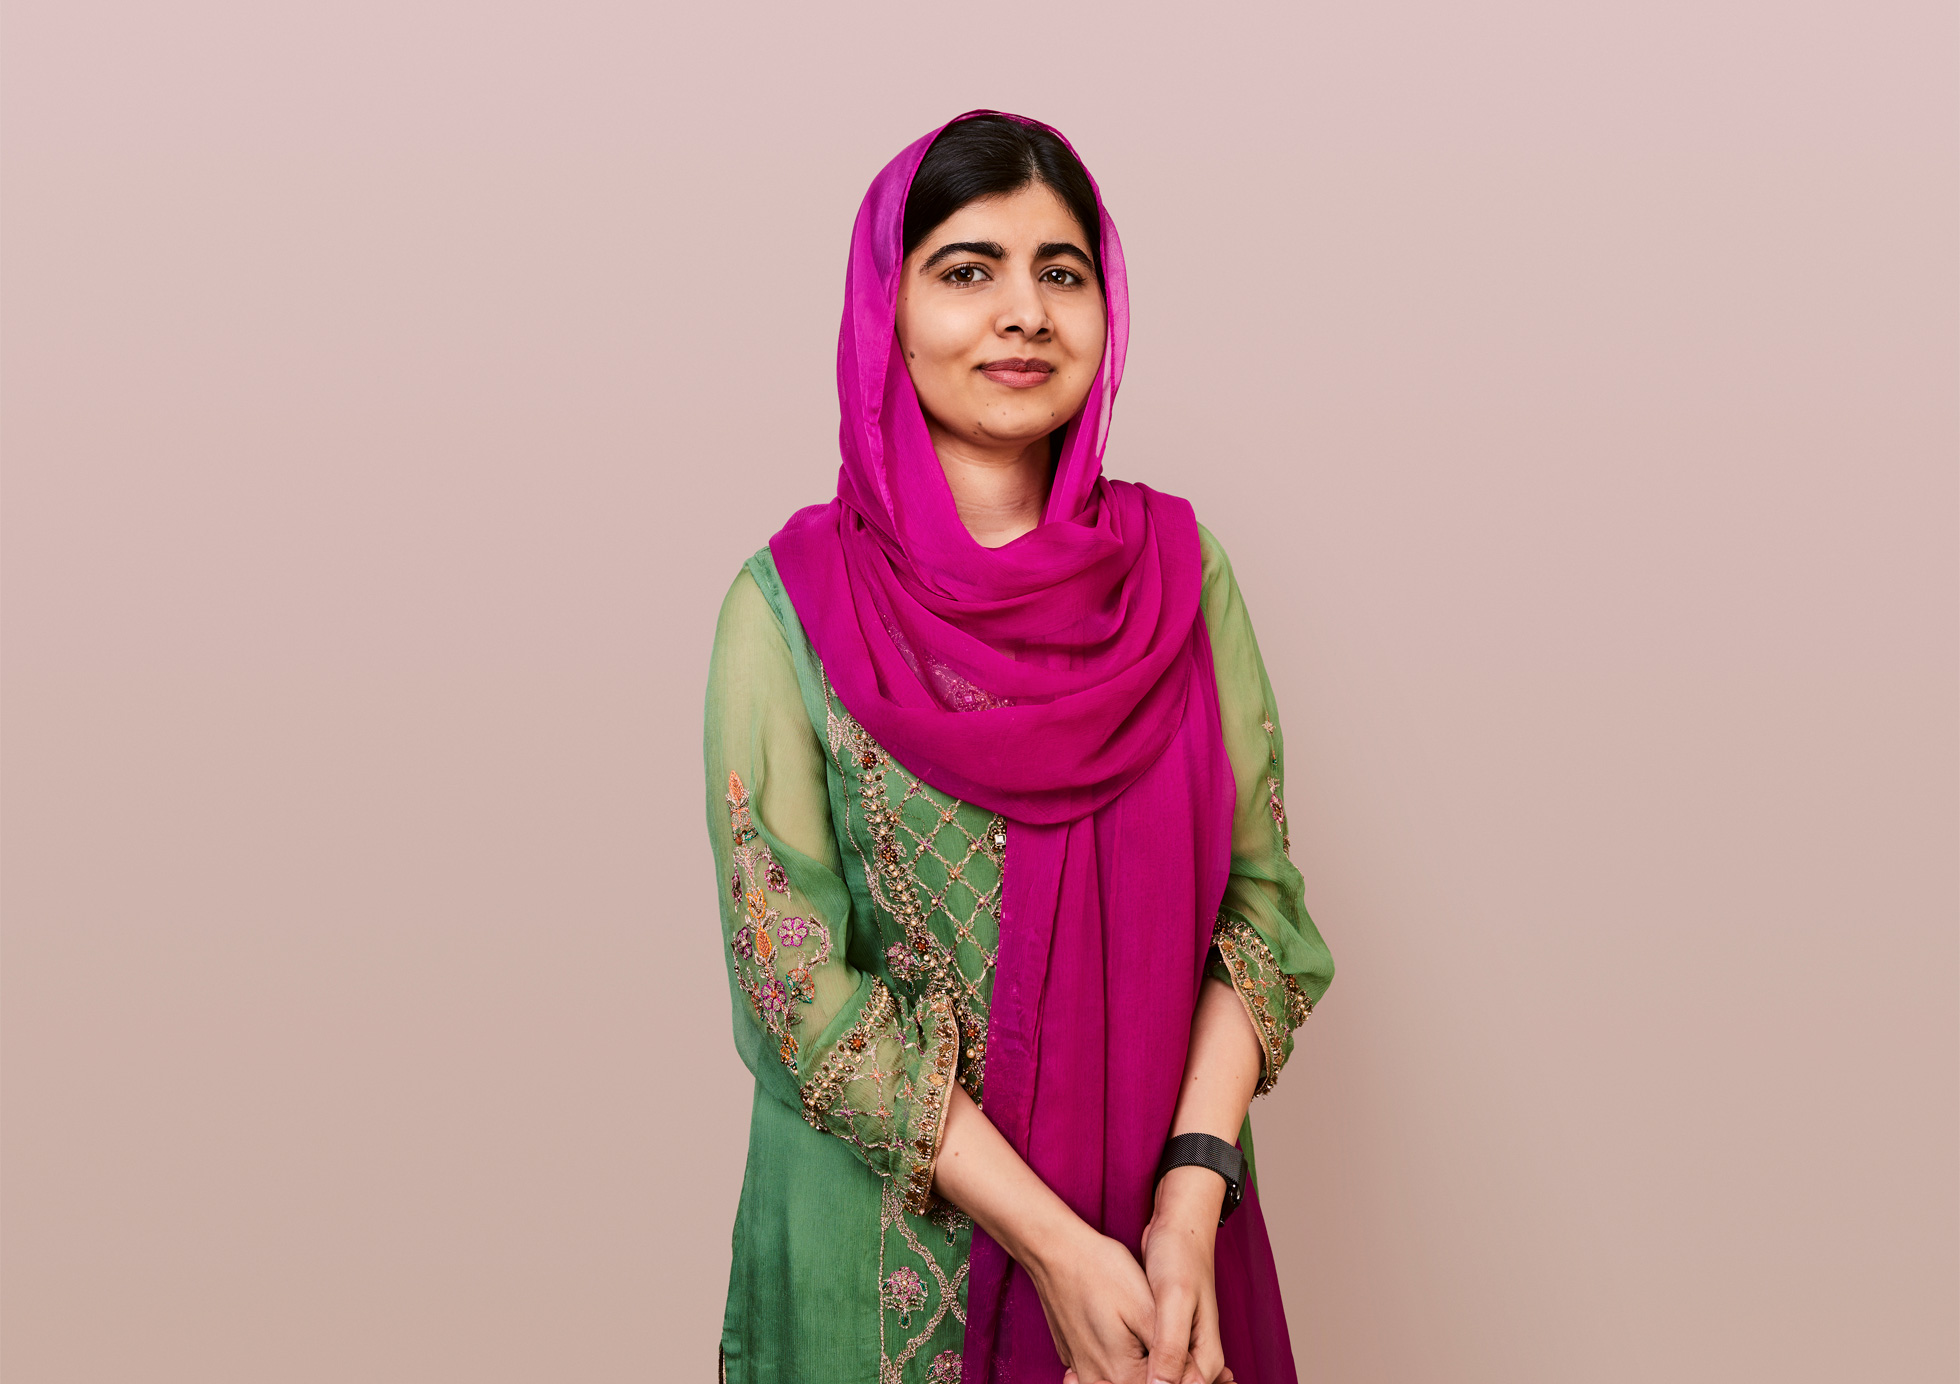 Nobel laureate Malala Yousafzai, apple tv+